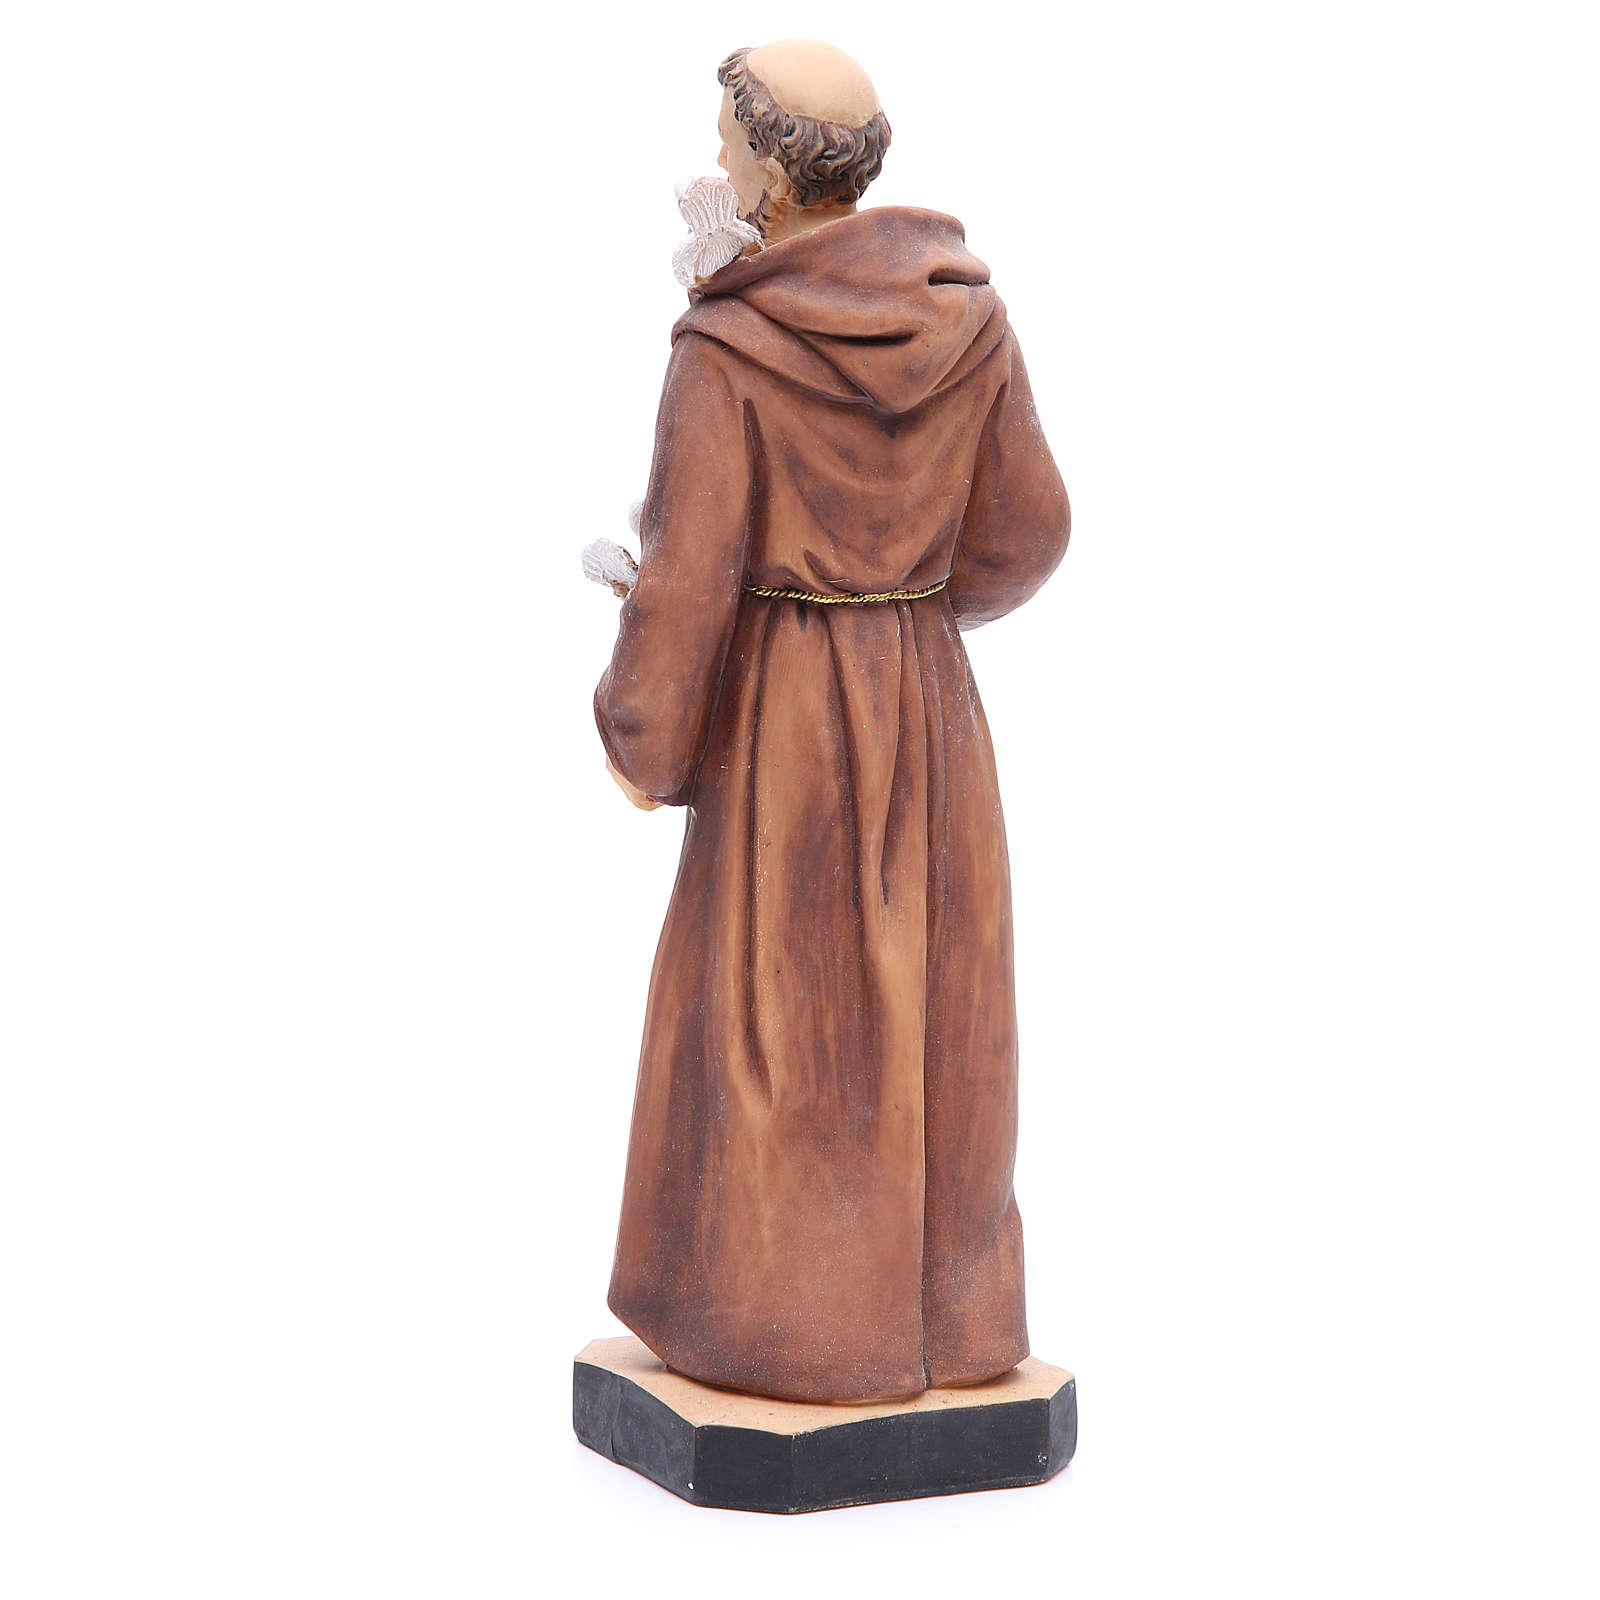 Saint Francis statue 30 cm in coloured resin 4